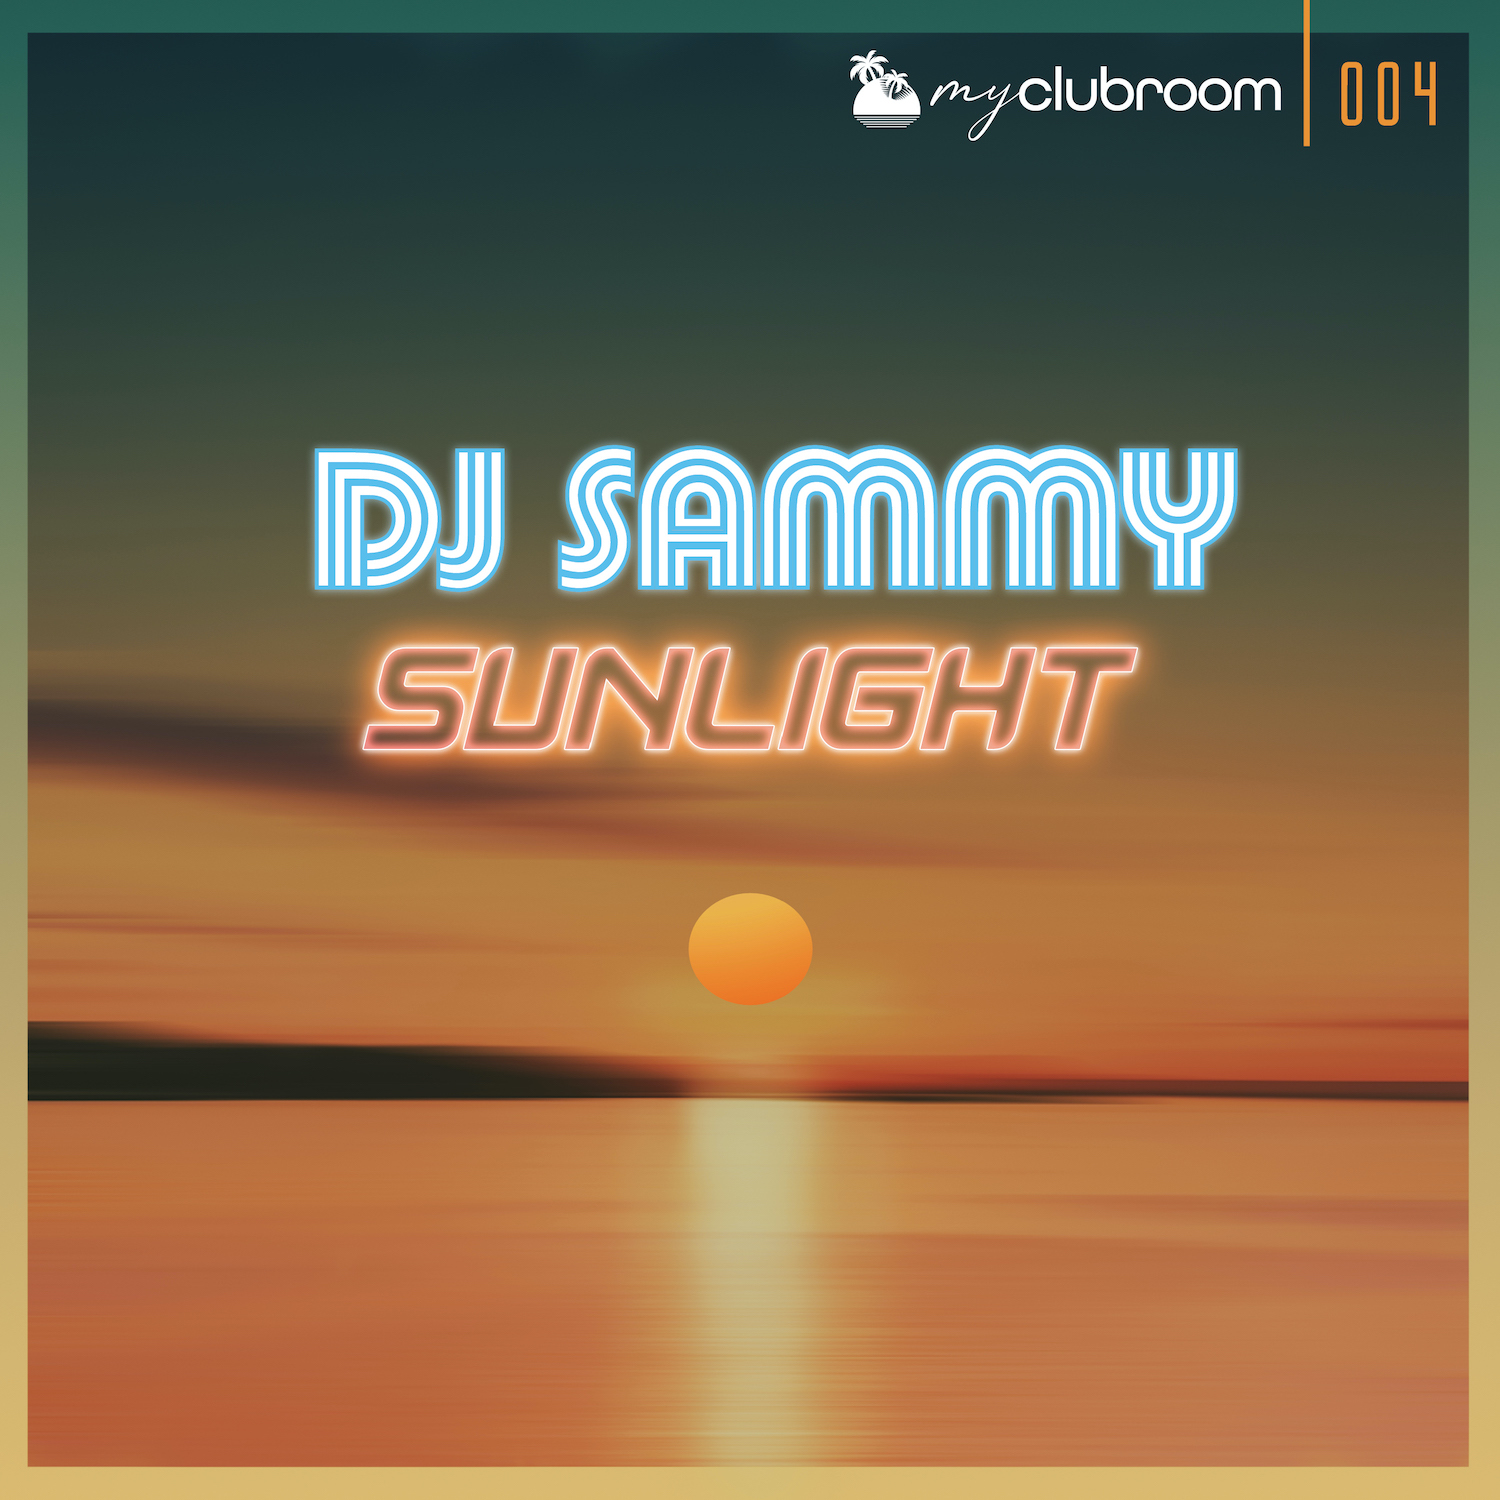 Cover DJ Sammy Sunlight 1500x1500